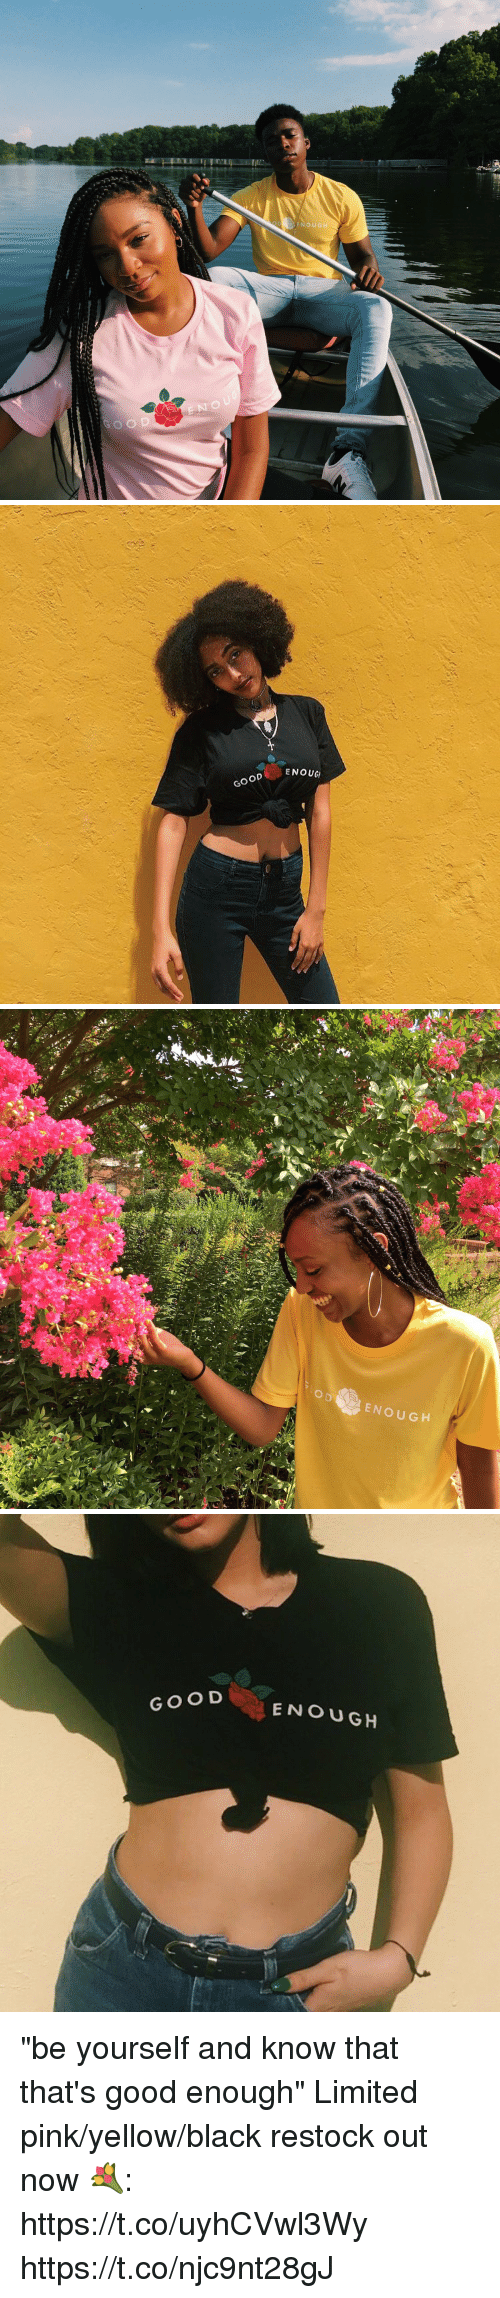 """pinkly: DENOUG   ENOUG  GOOD E   ODENOUGH   GOOD  ENOUGH """"be yourself and know that that's good enough""""  Limited pink/yellow/black restock out now 💐: https://t.co/uyhCVwl3Wy https://t.co/njc9nt28gJ"""